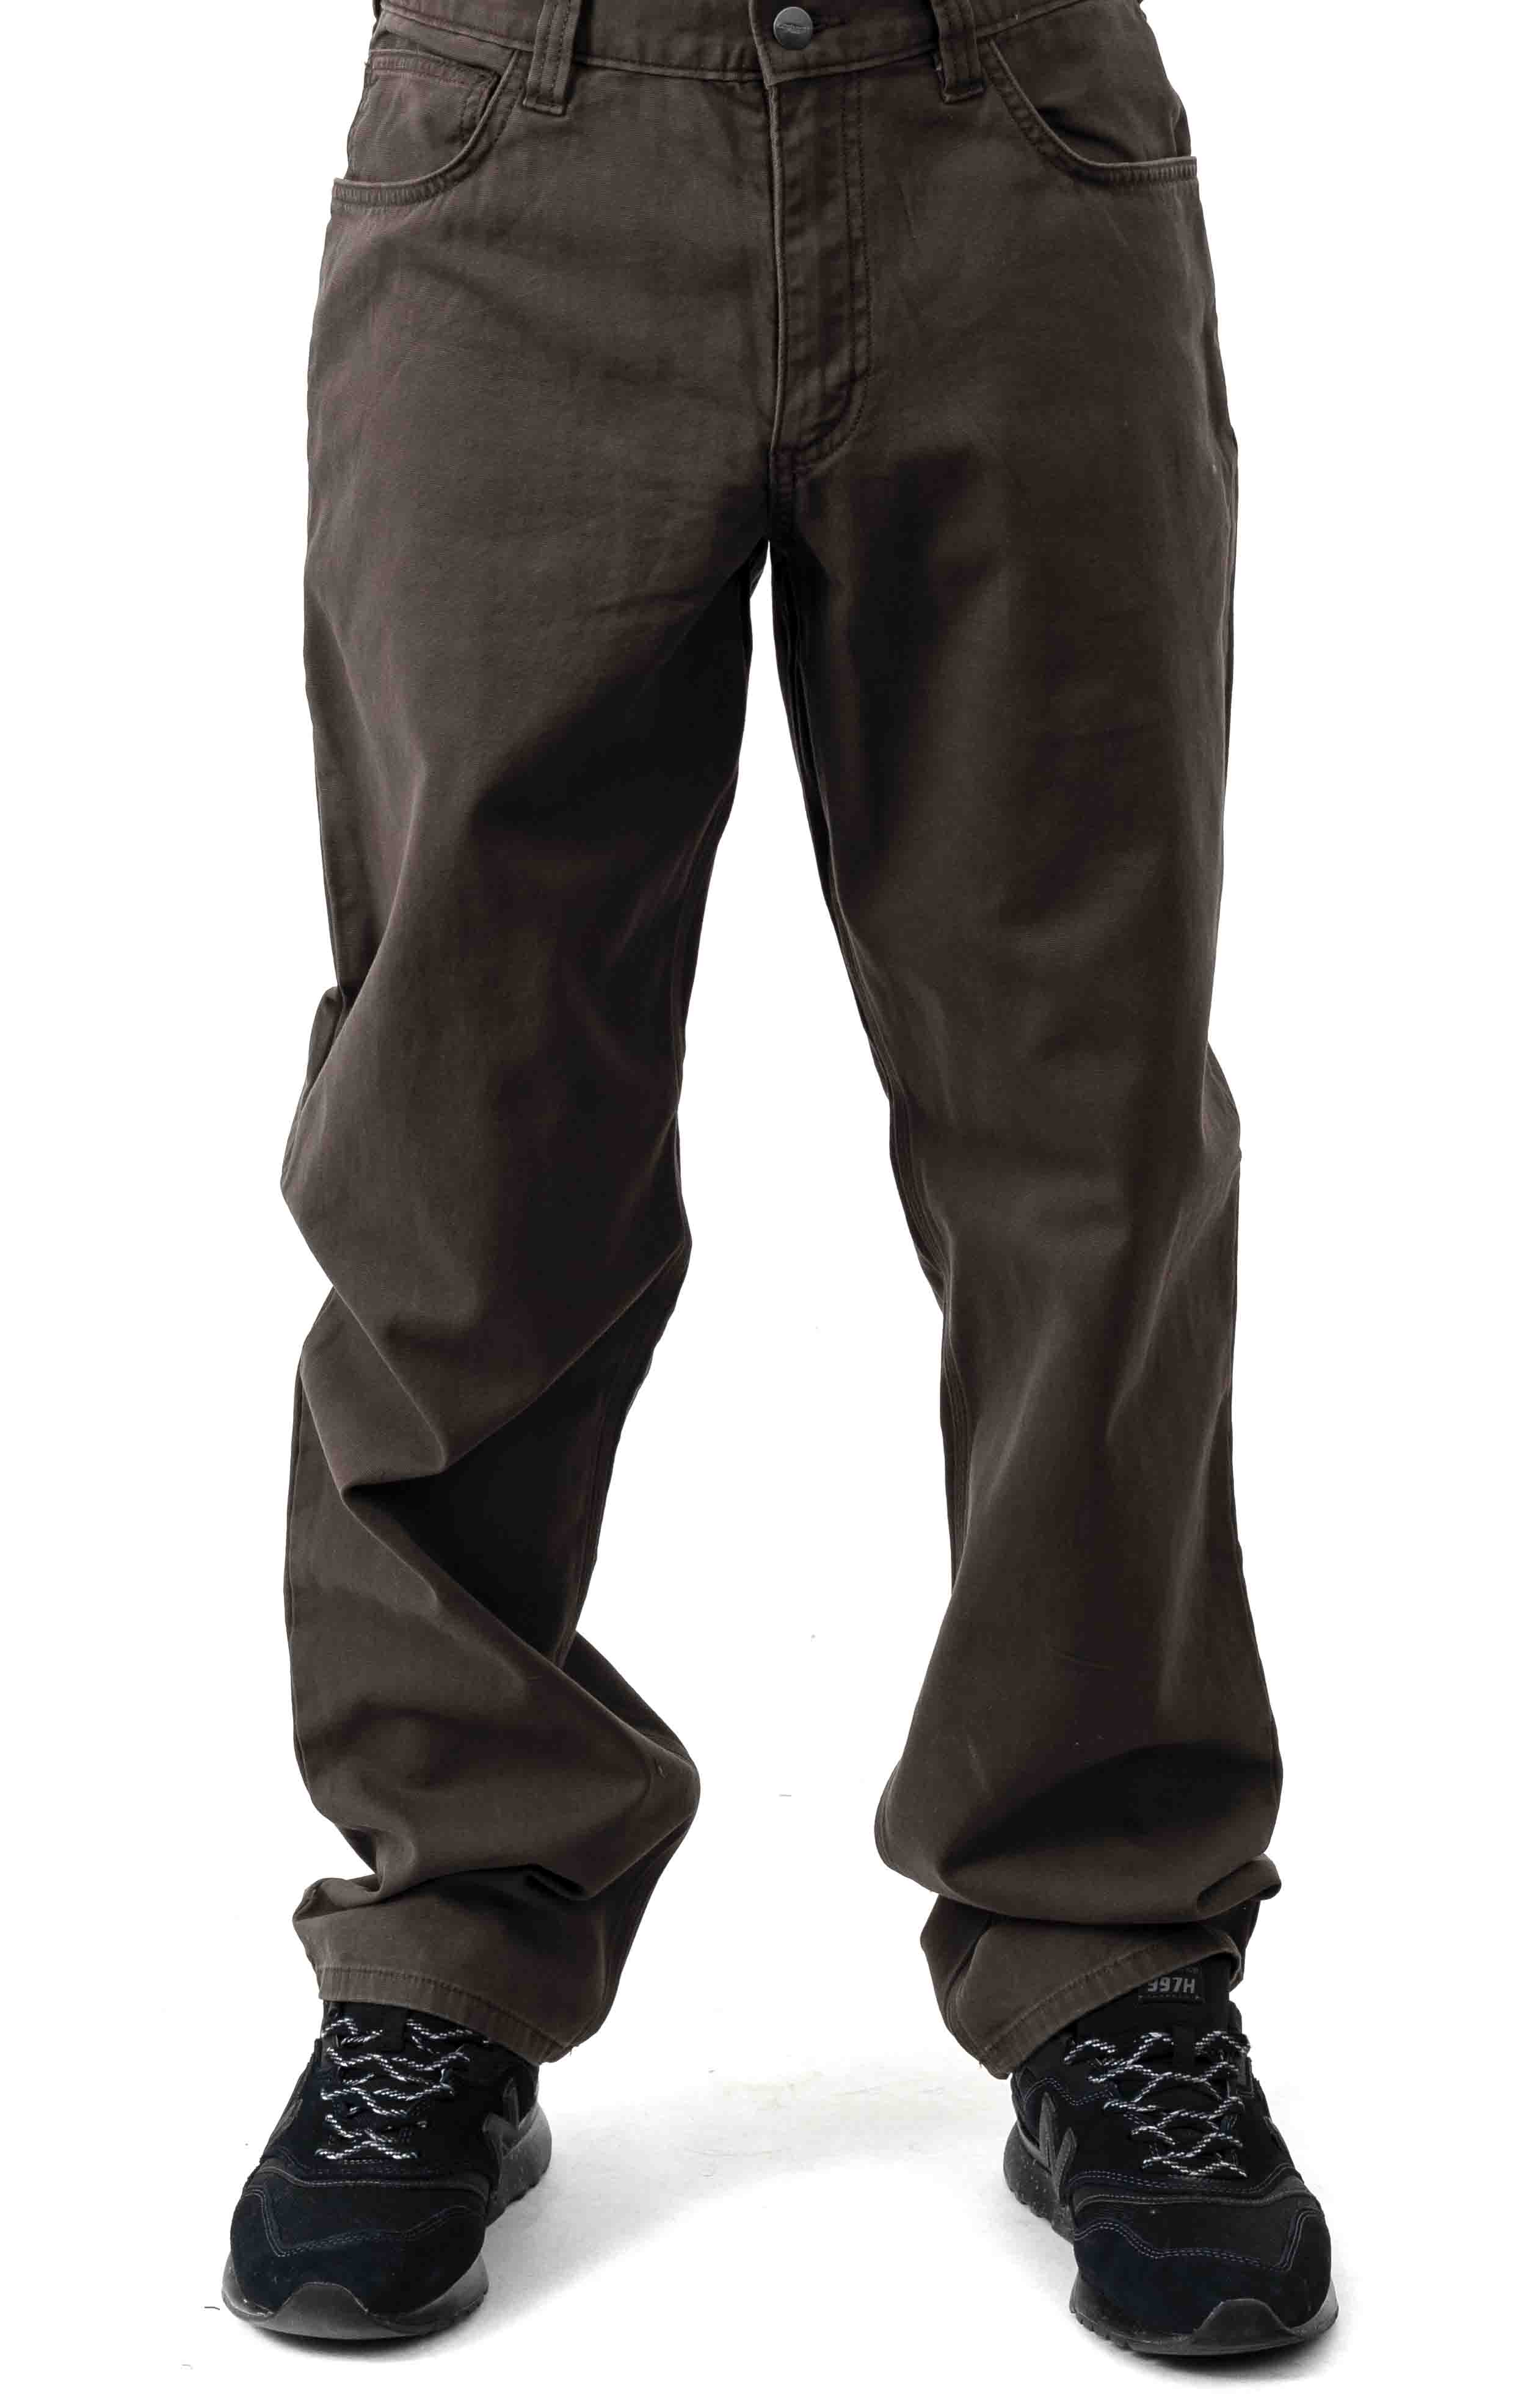 (102517) Rugged Flex Rigby 5 Pocket Work Pant - Dark Coffee 2